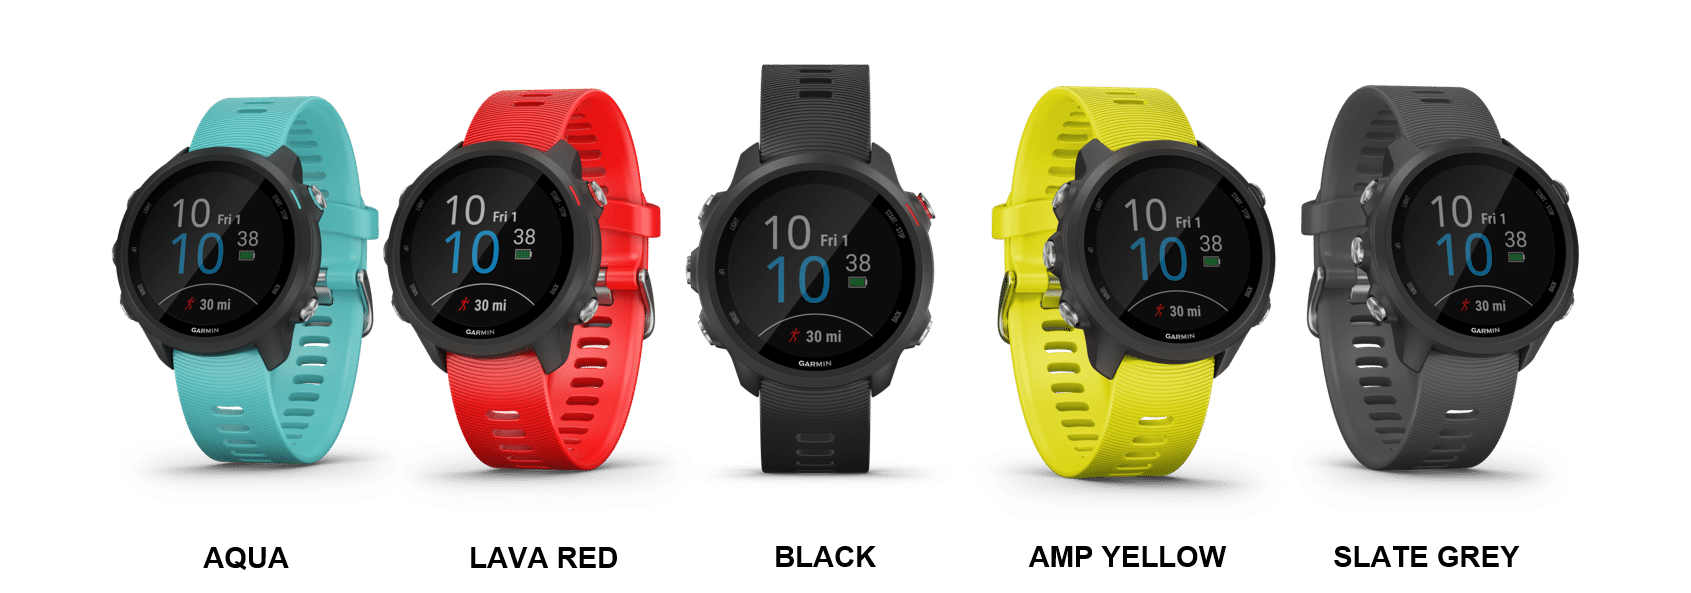 Garmin Forerunner 245和245 Music smartwatches在印度推出